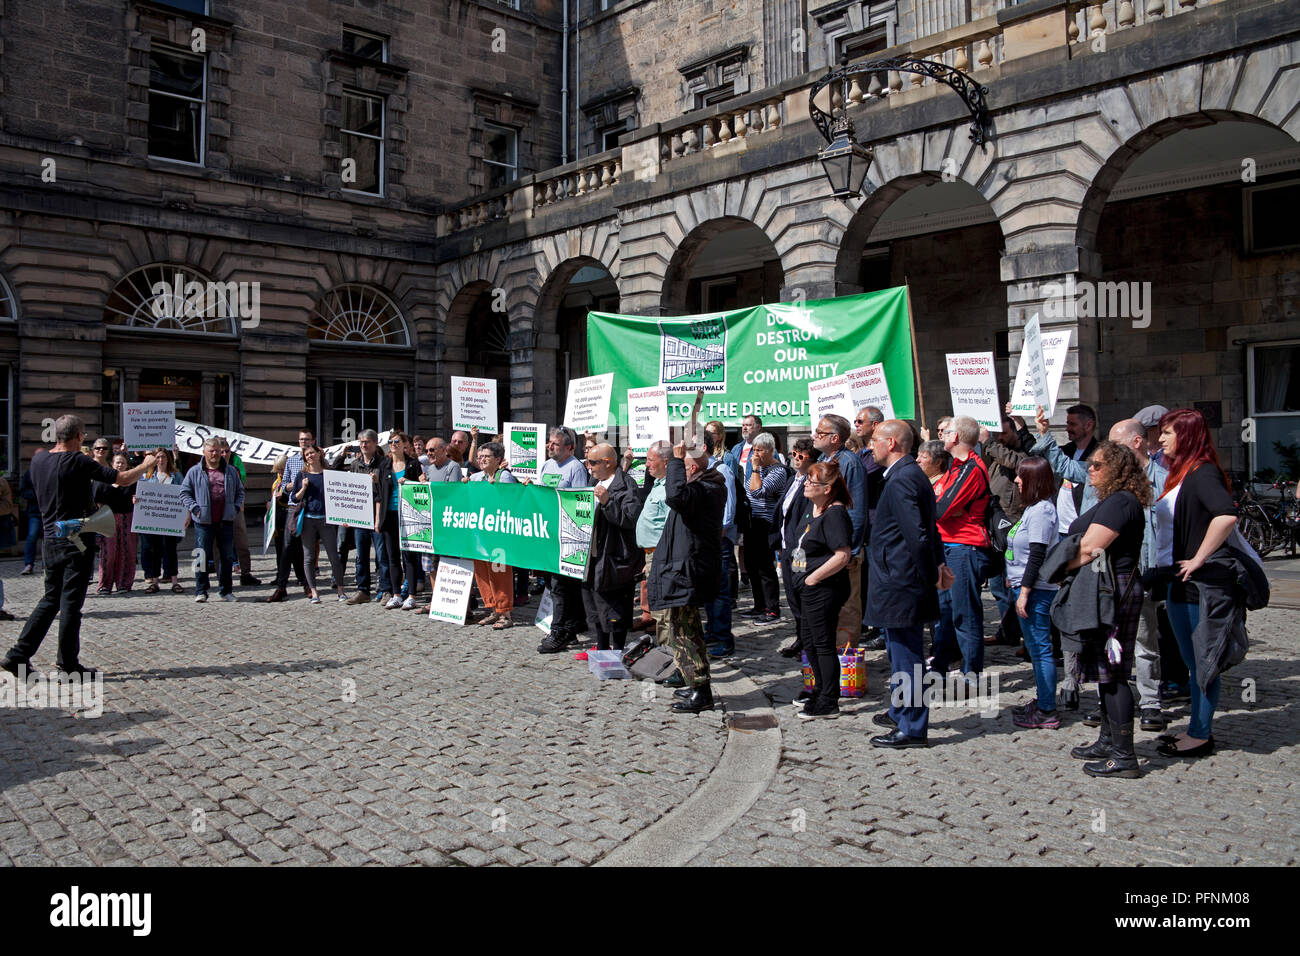 Edinburgh, Scotland, UK 22 August 2018. City Chambers offices. Campaigners against a proposed £50 million development in Leith handed in a petition with more  than 10,000 signatures to the city council's planning committee at the City Chambers on the Royal Mile. 'Save Leith Walk' is a grassroots public campaign to prevent the demolition of the 1930s sandstone building and influence what is built on the site. - Stock Image